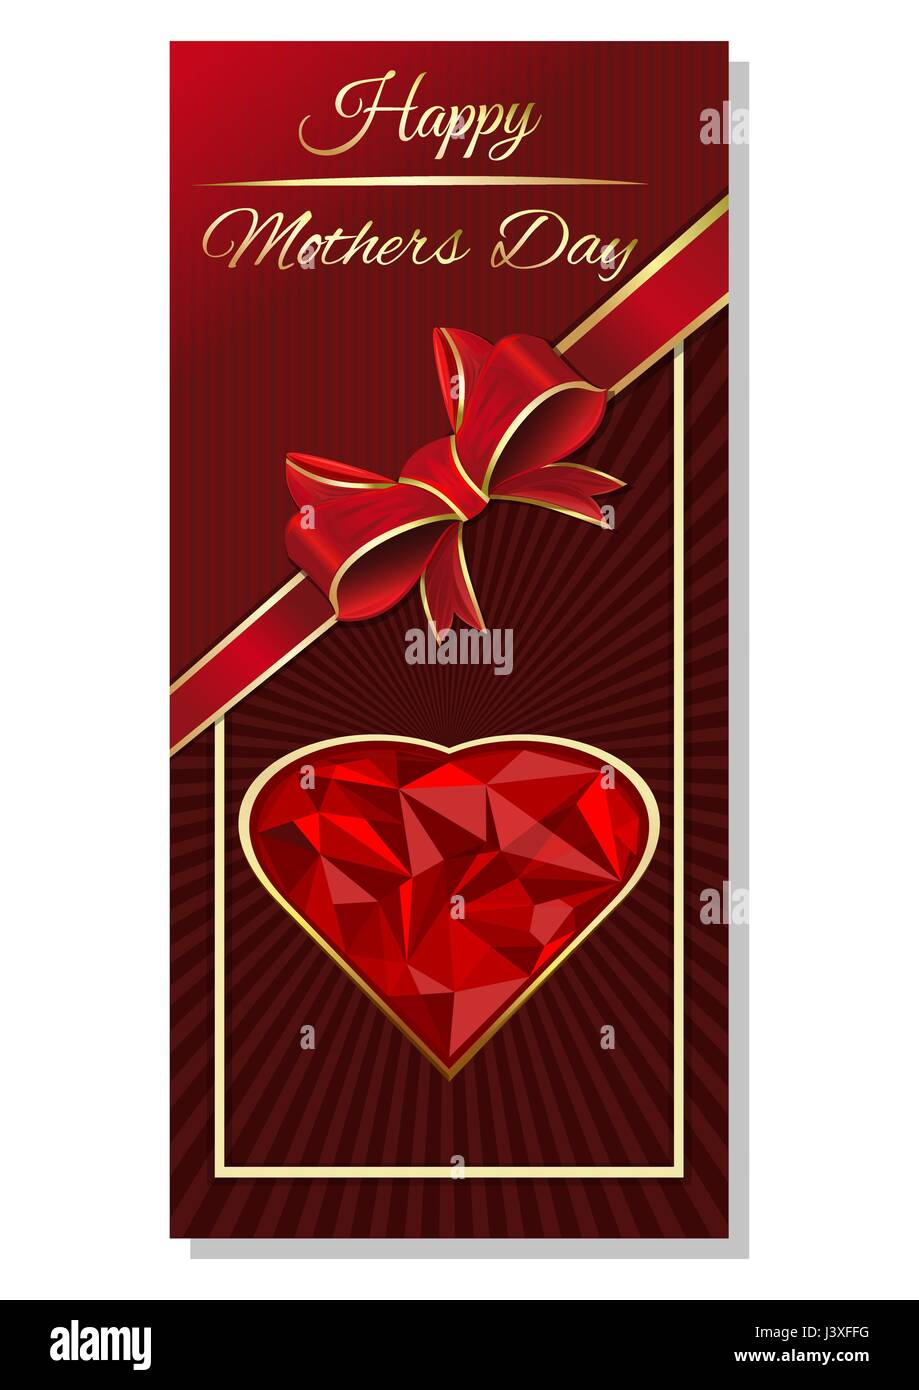 Mothers Day Greeting Card Design Stock Vector Art Illustration